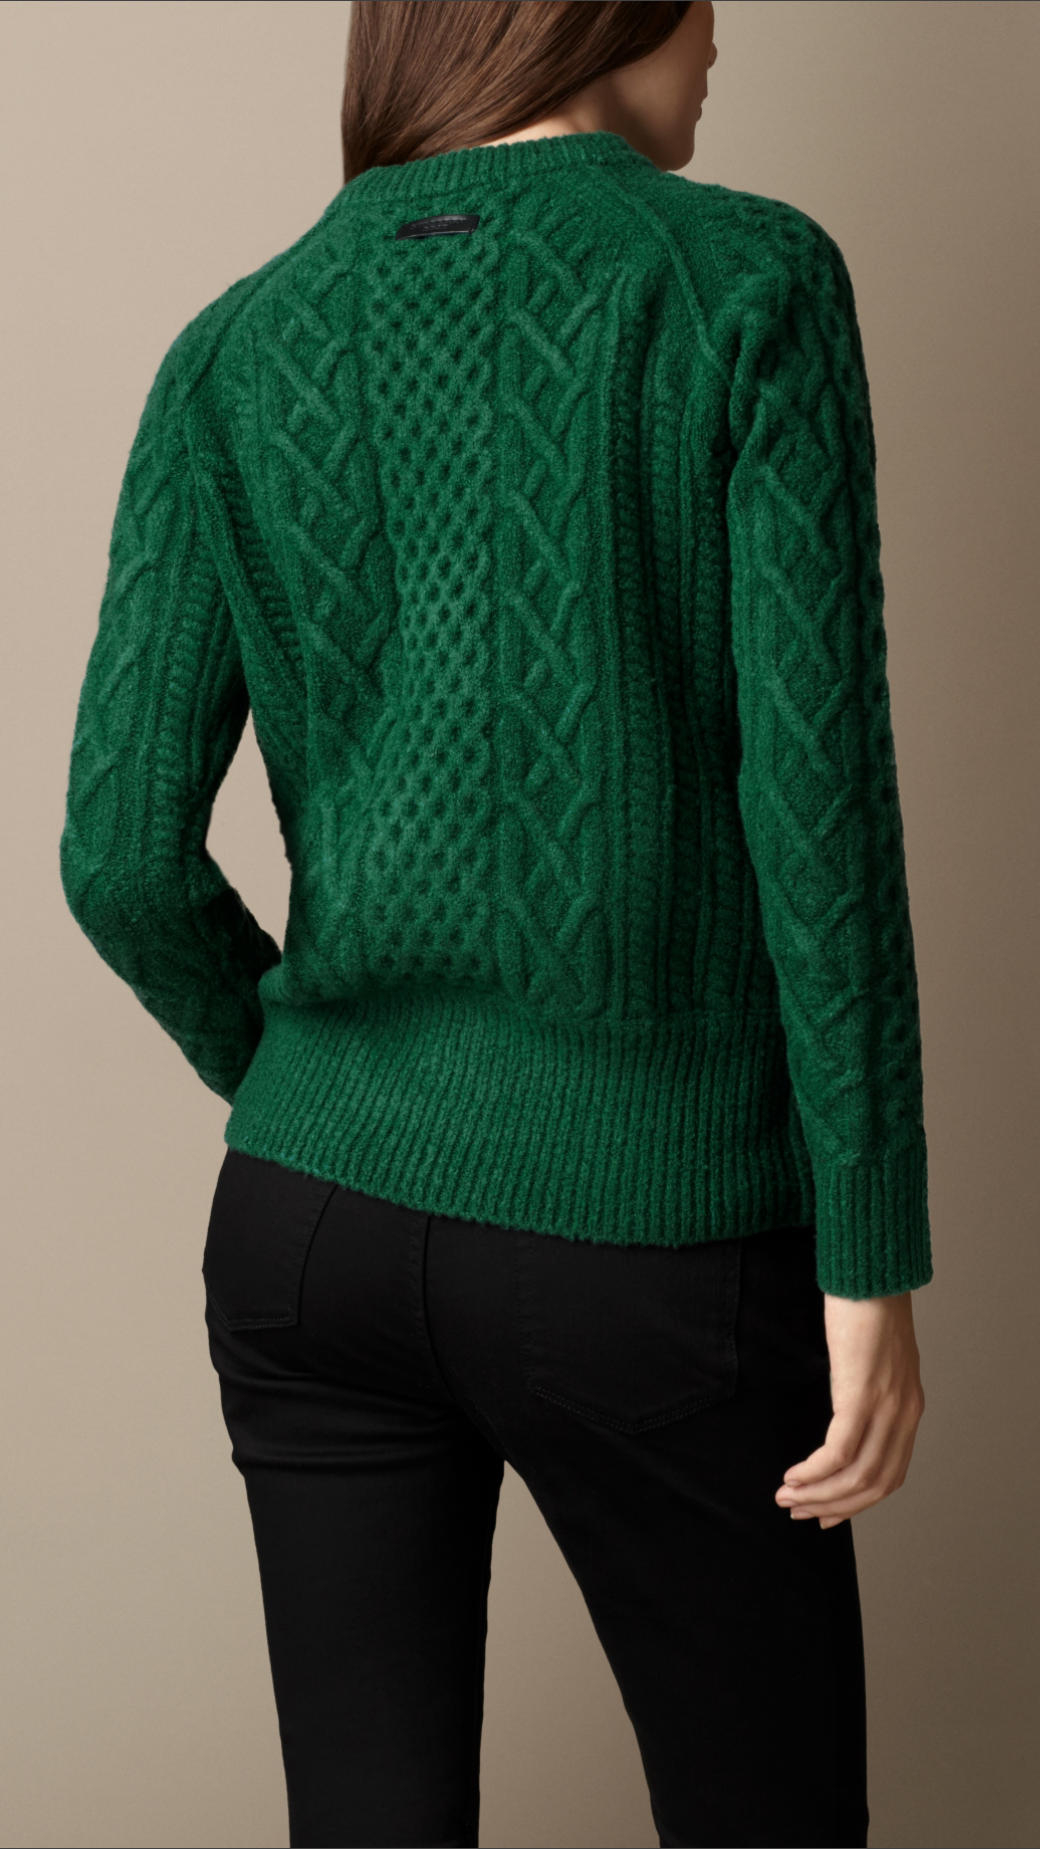 Burberry Wool Blend Cable Knit Sweater in Green | Lyst